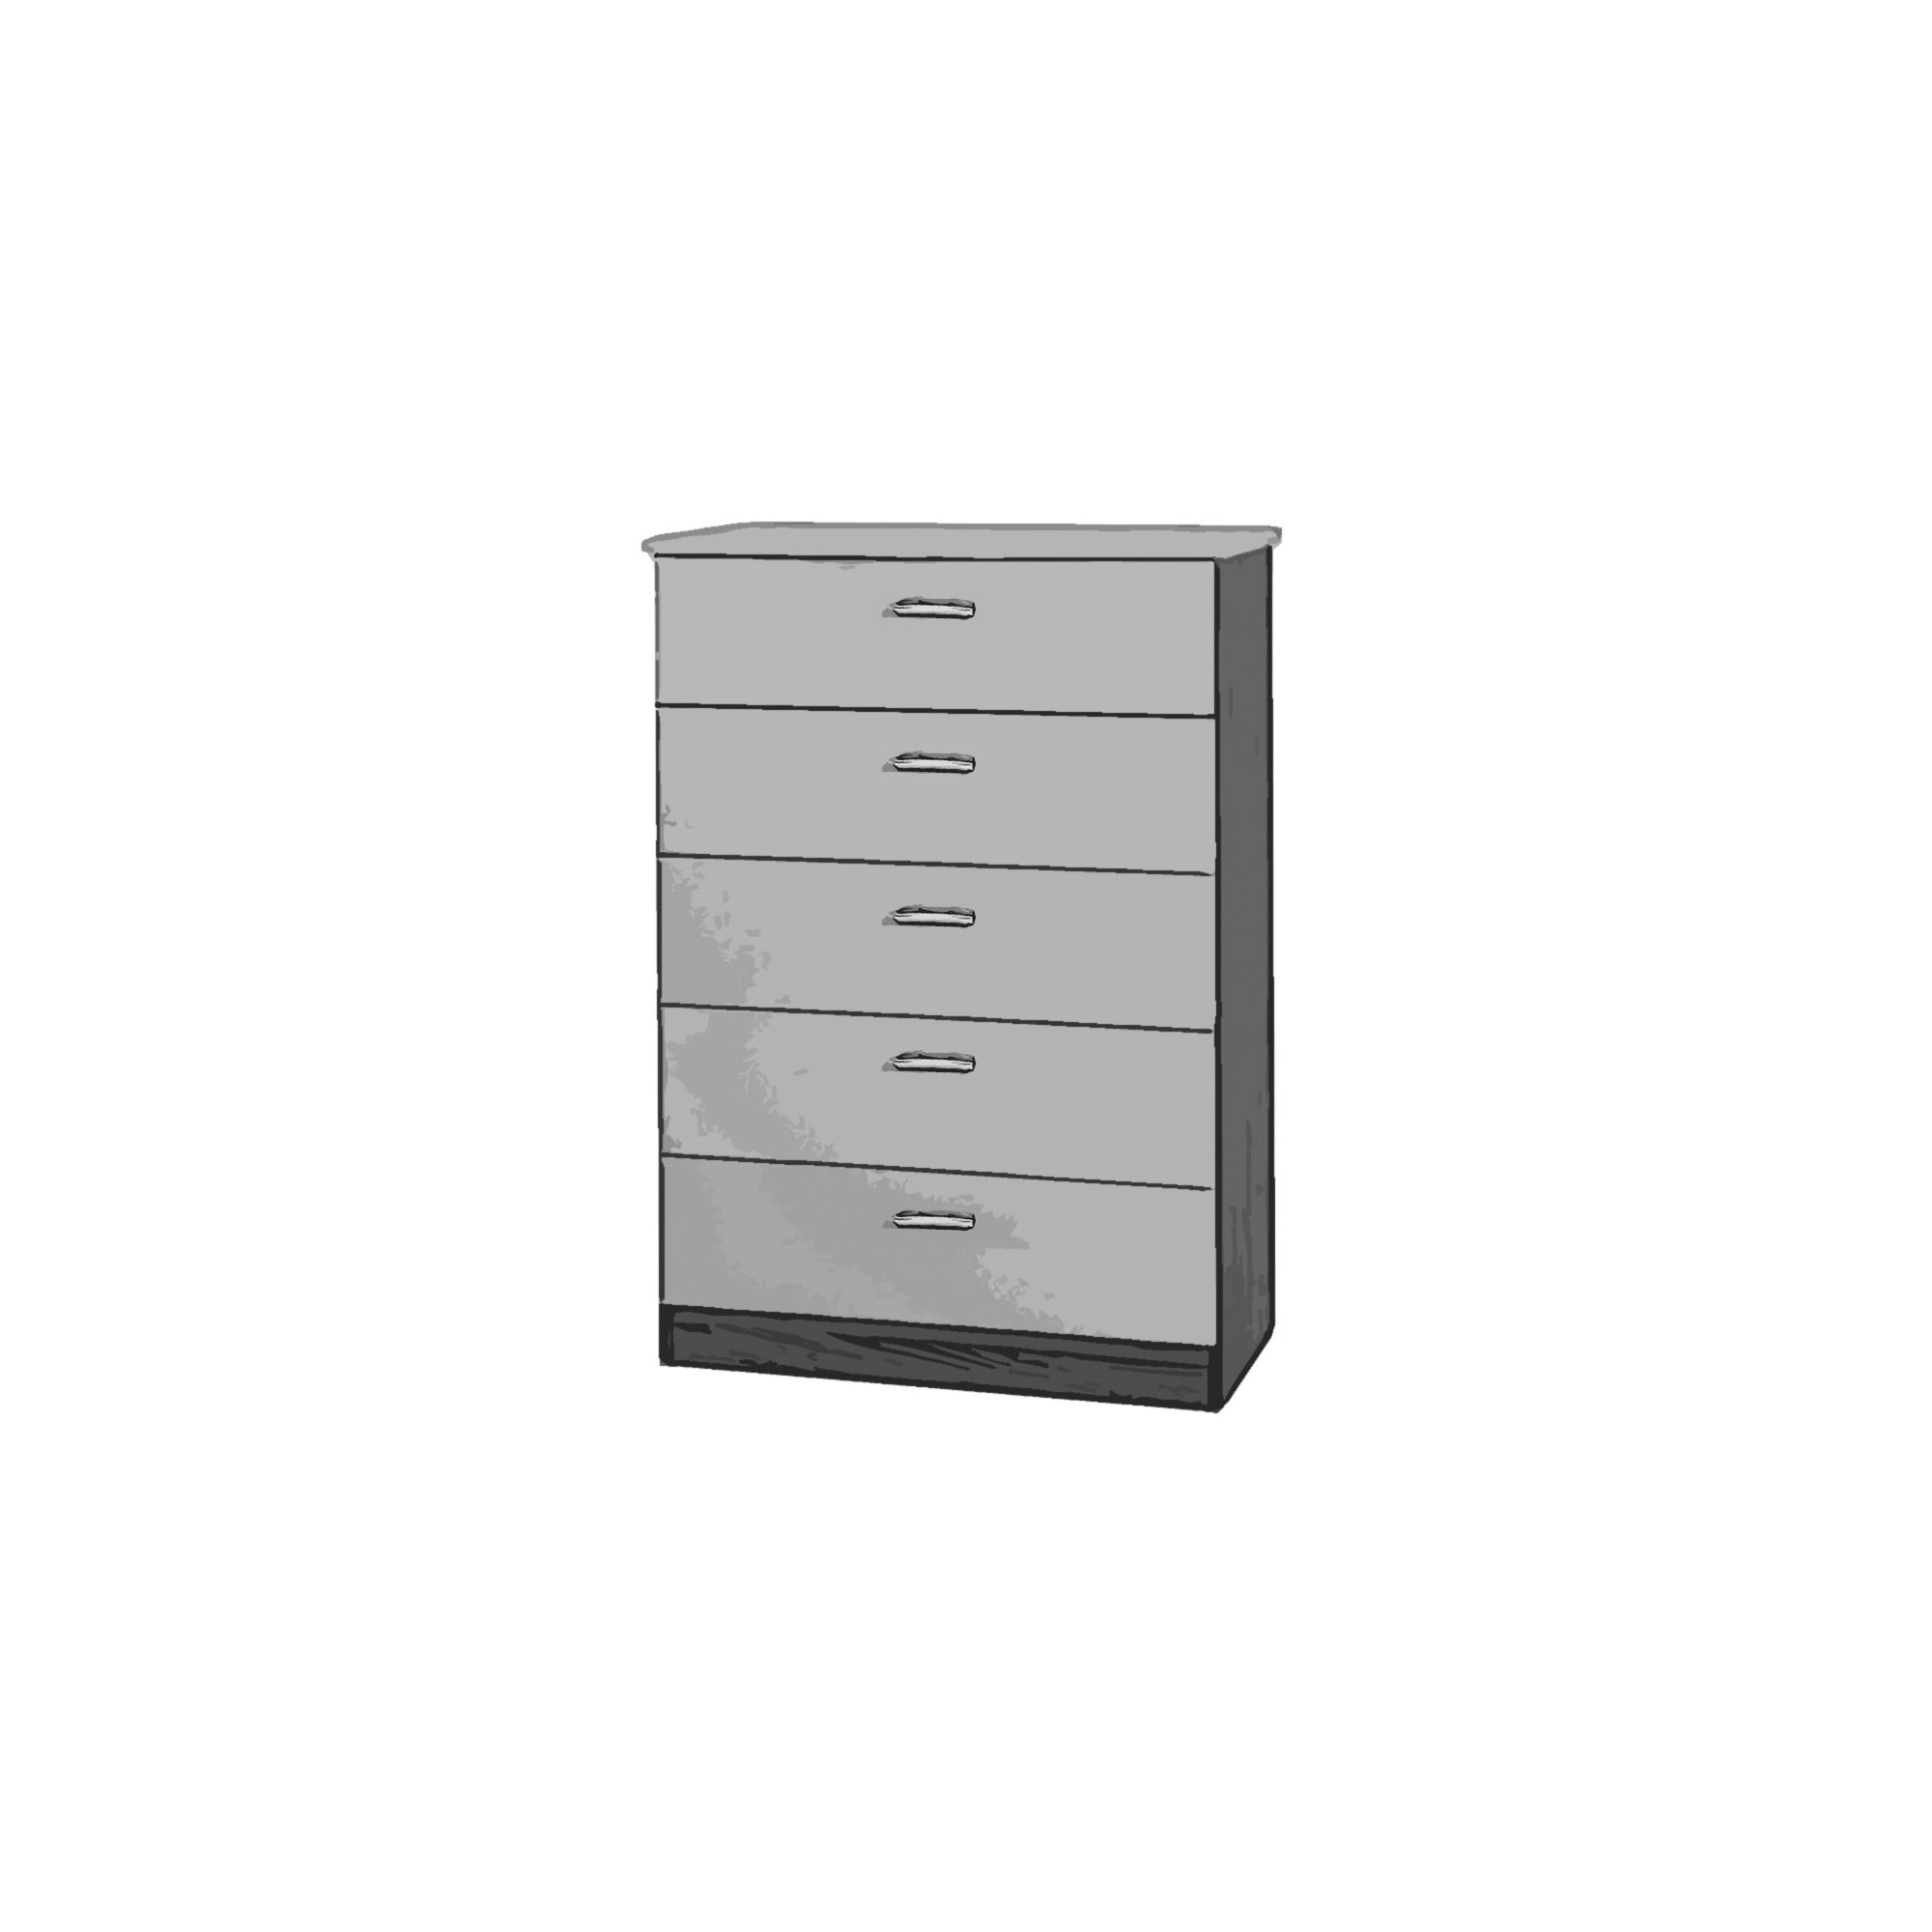 Welcome Furniture Mayfair 5 Drawer Chest - Black - Ebony - Black at Tesco Direct